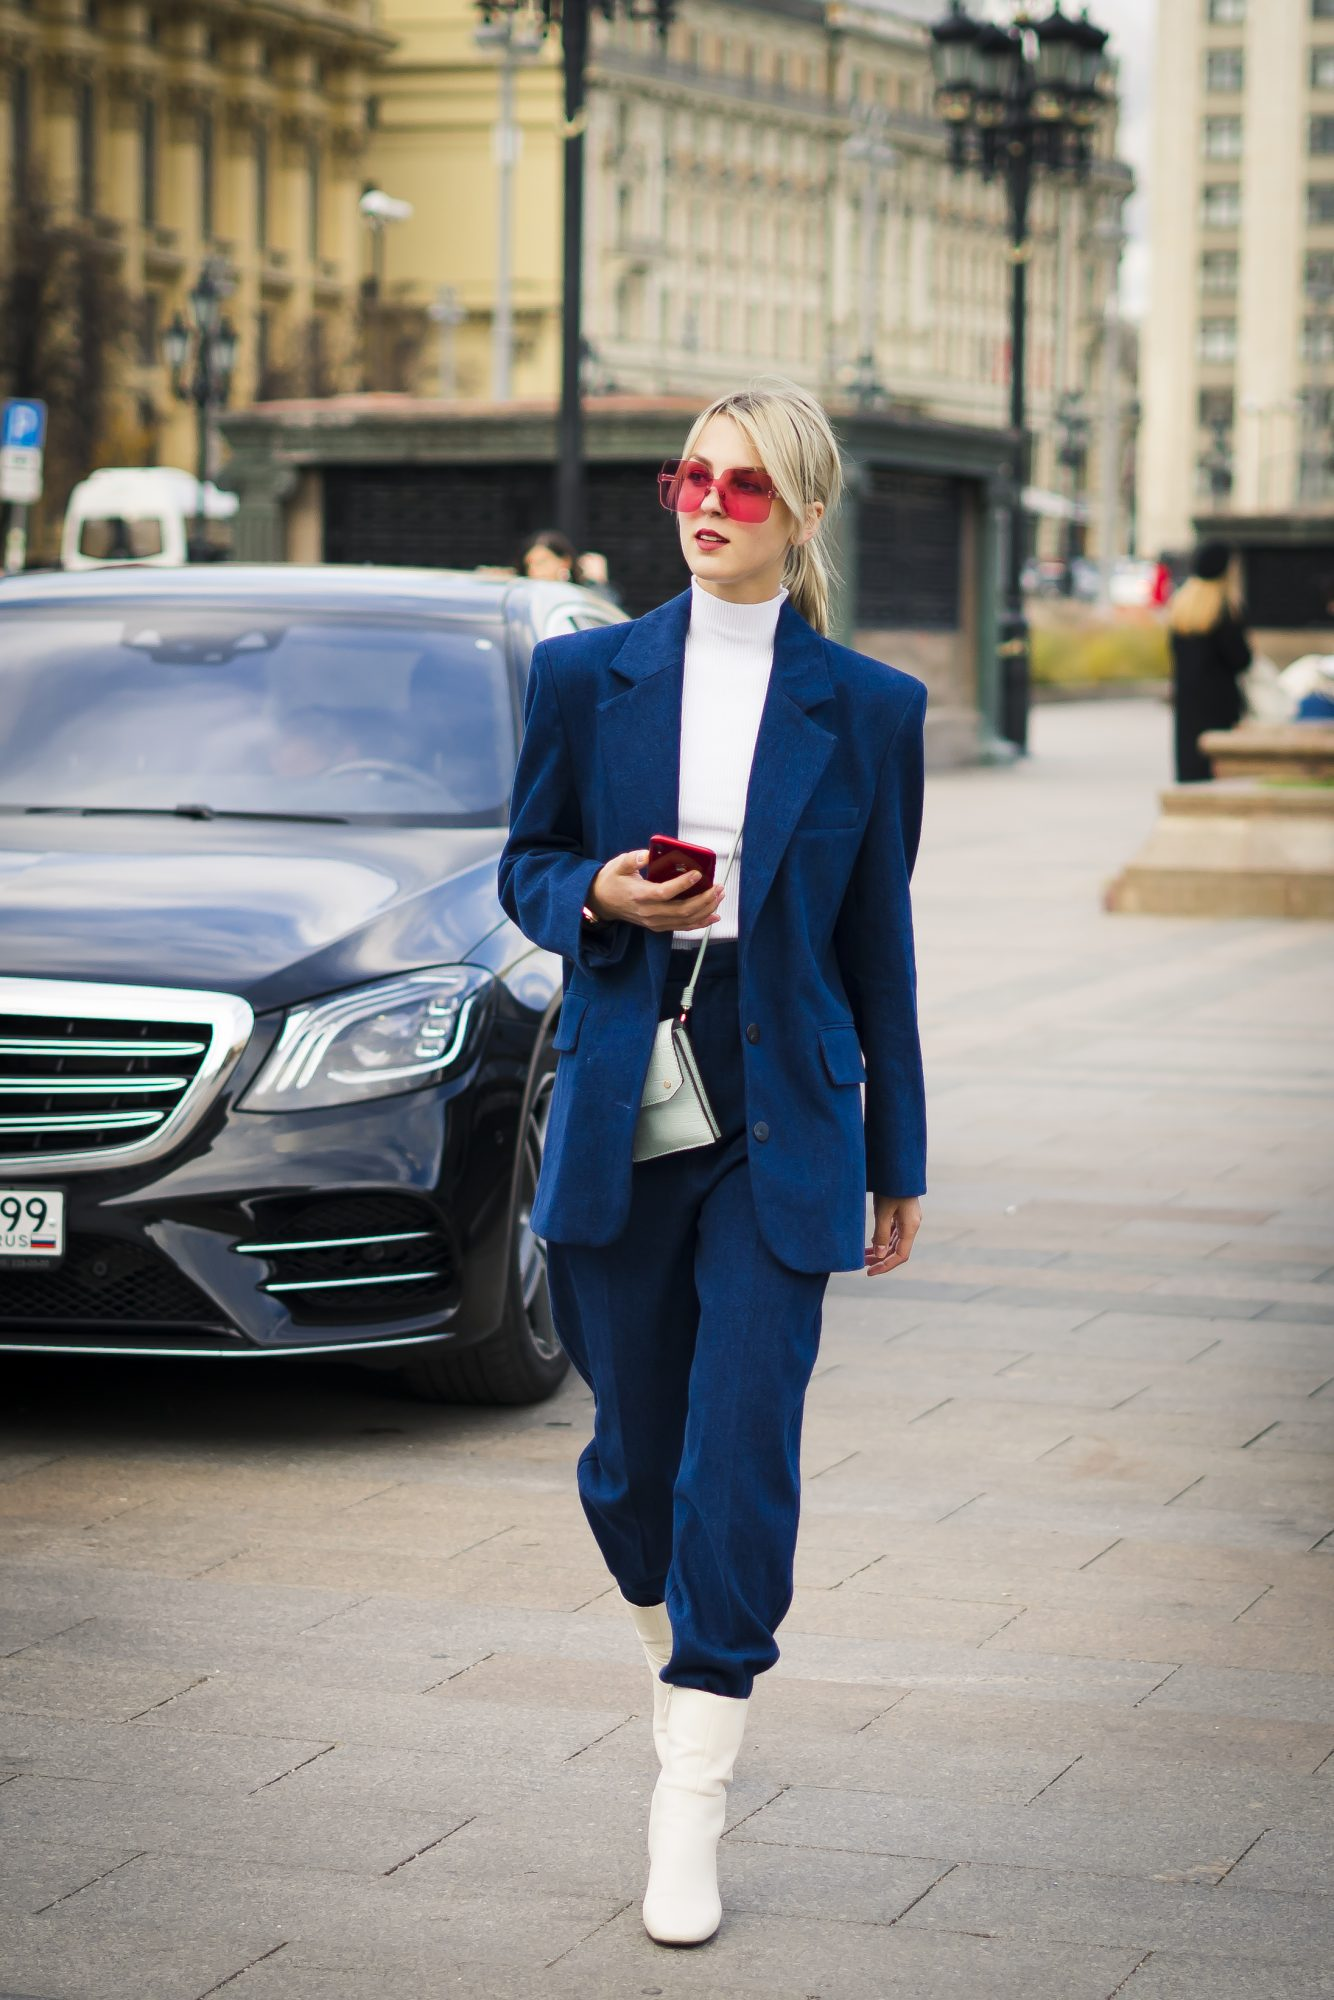 Suit and boots street style outfit